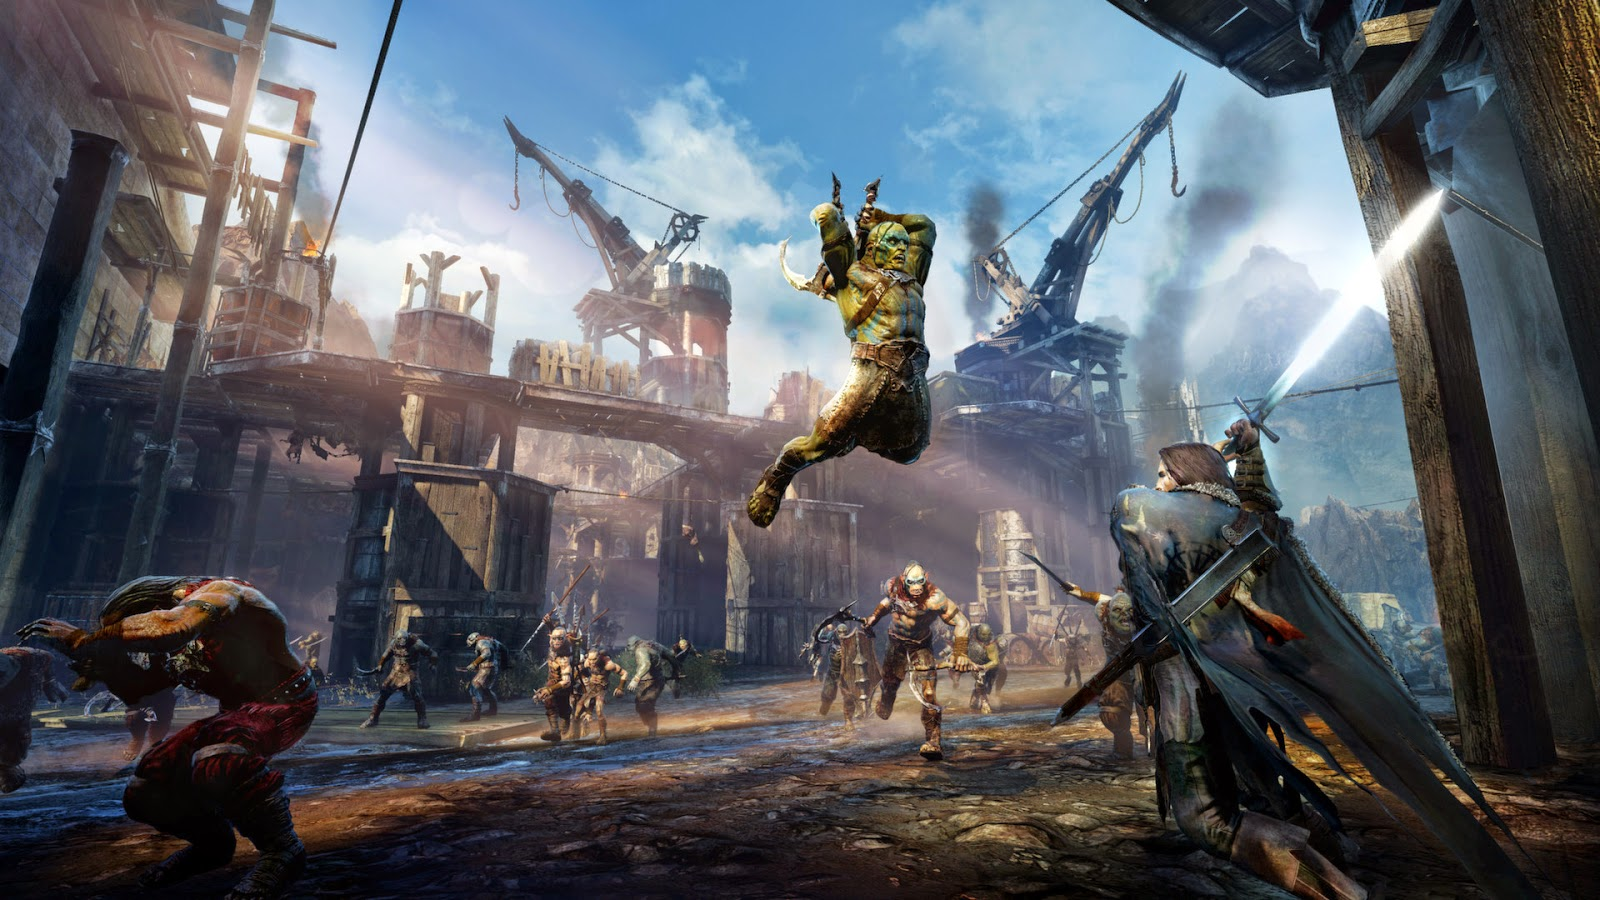 Middle Earth: Shadow of Mordor gameplay